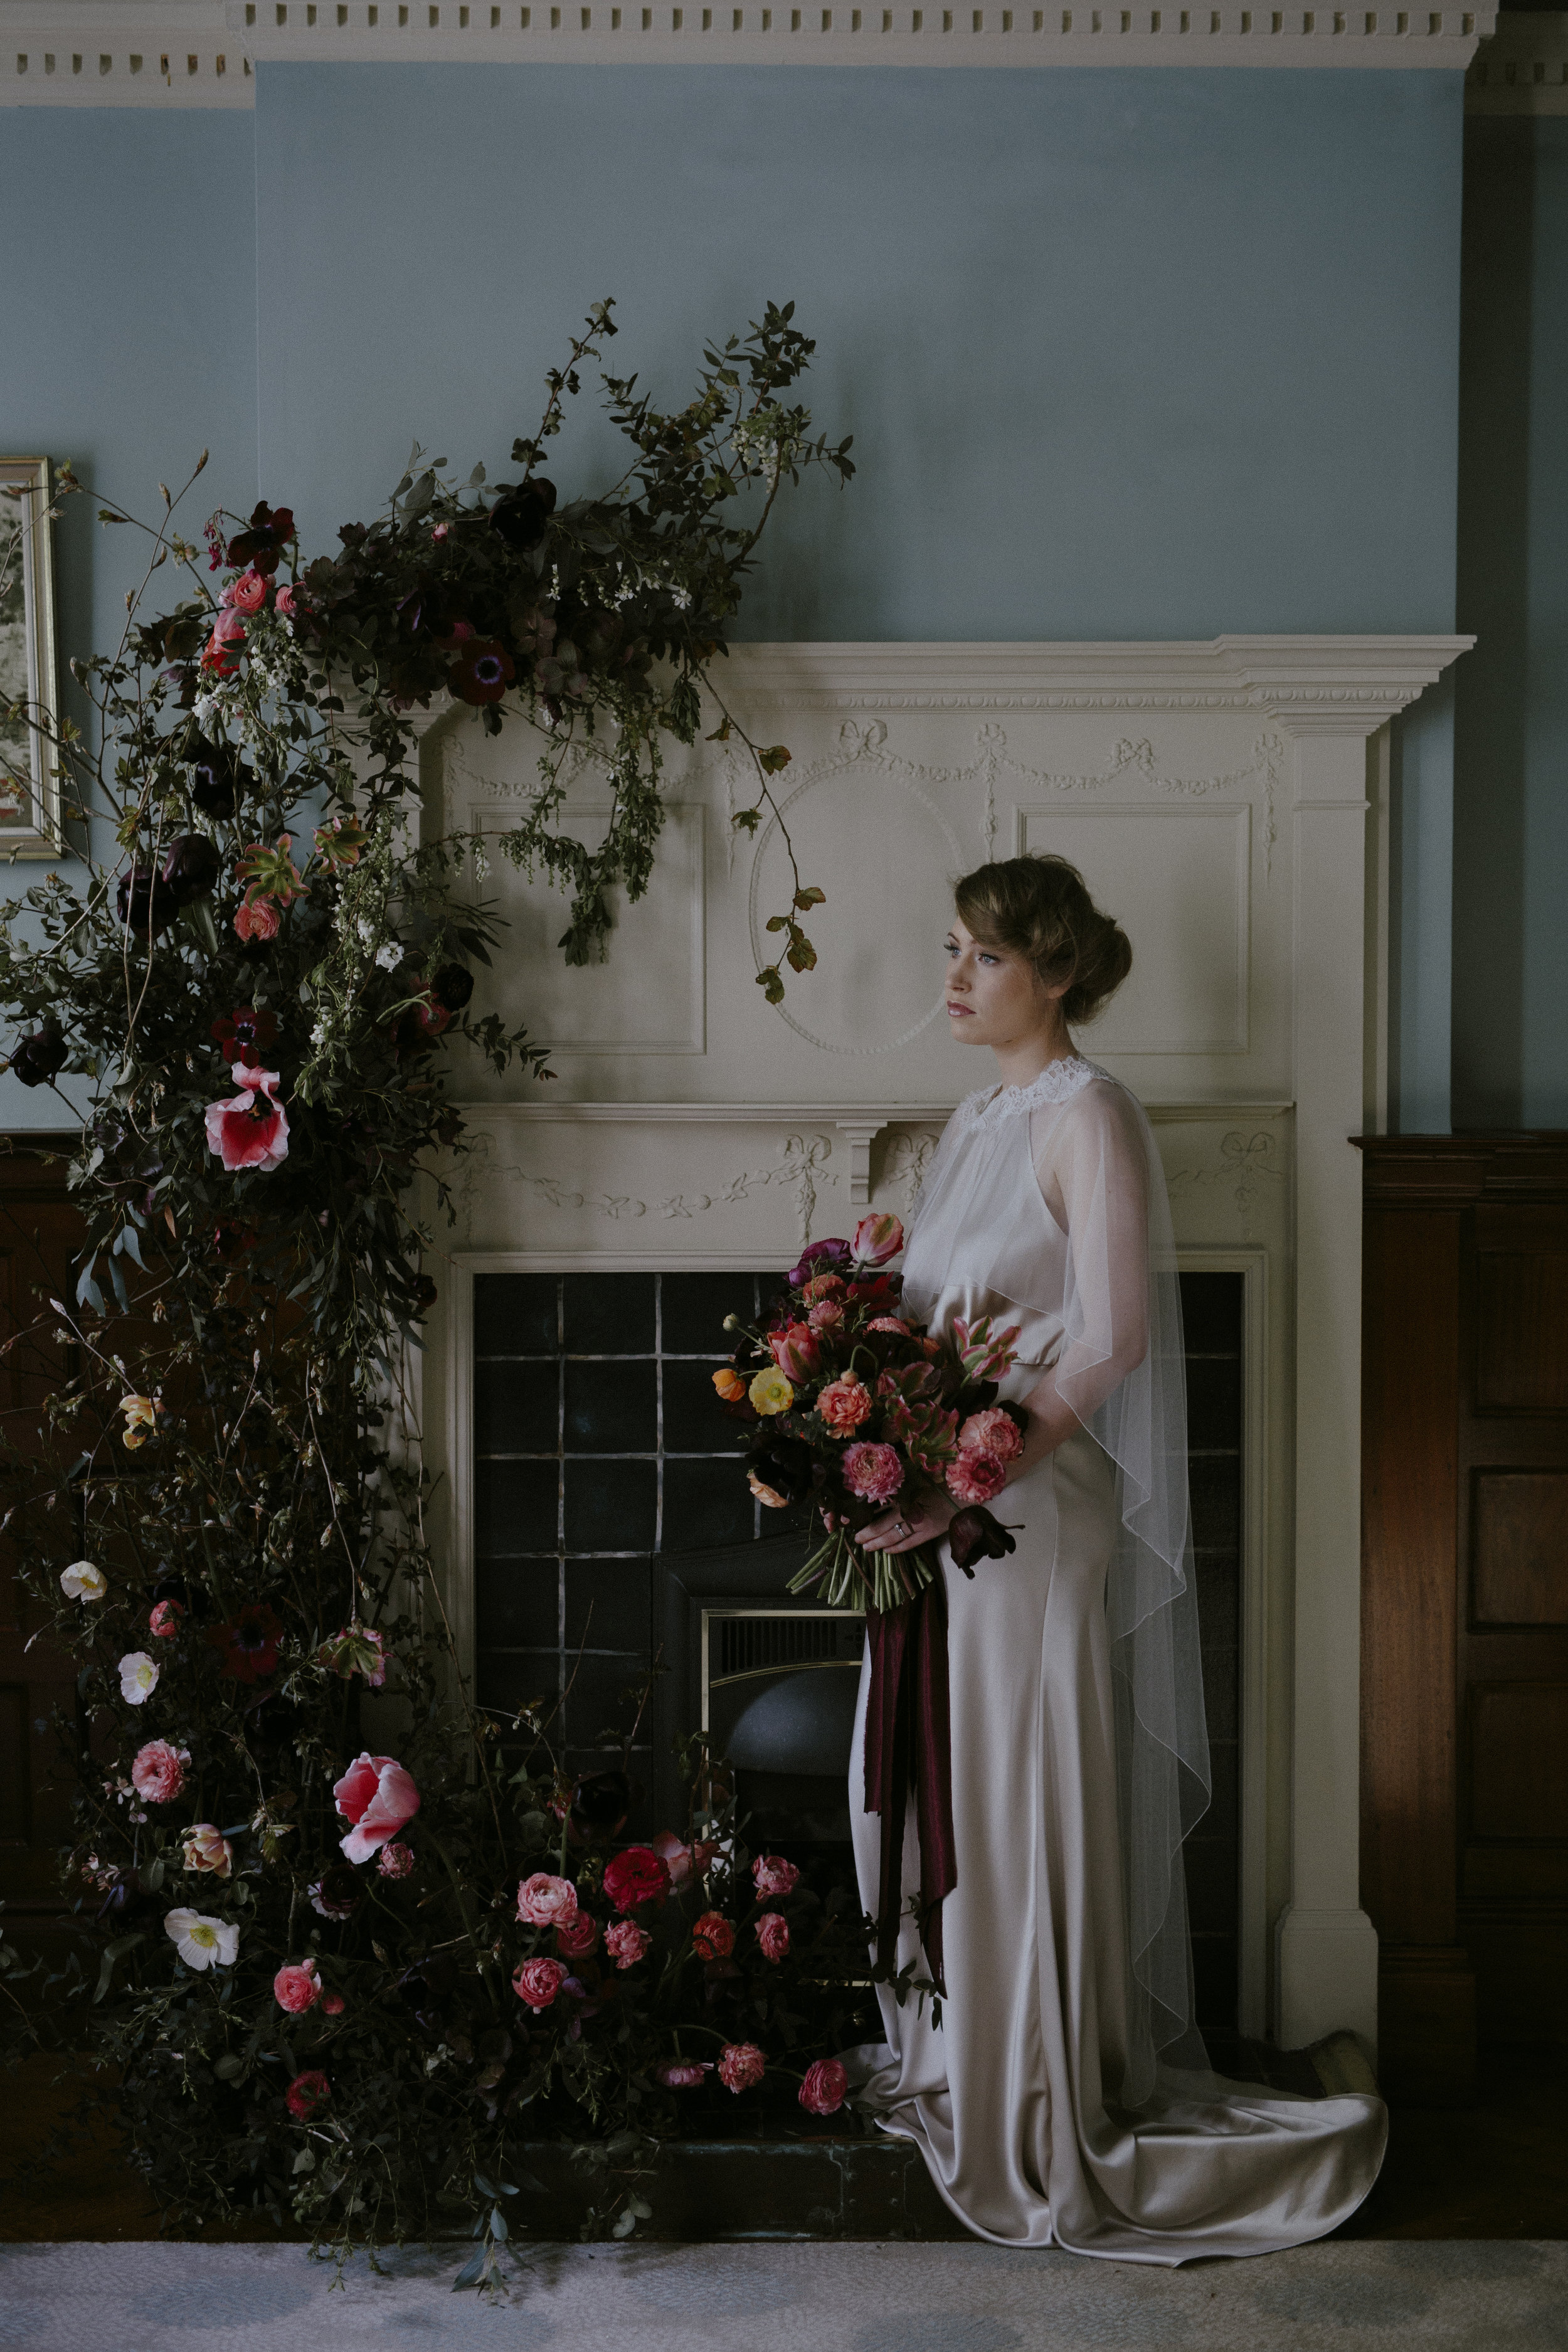 Agnes-and-bee-Kate-Beaumont-wedding-dresses-Ruth-Atkinson-17.jpg